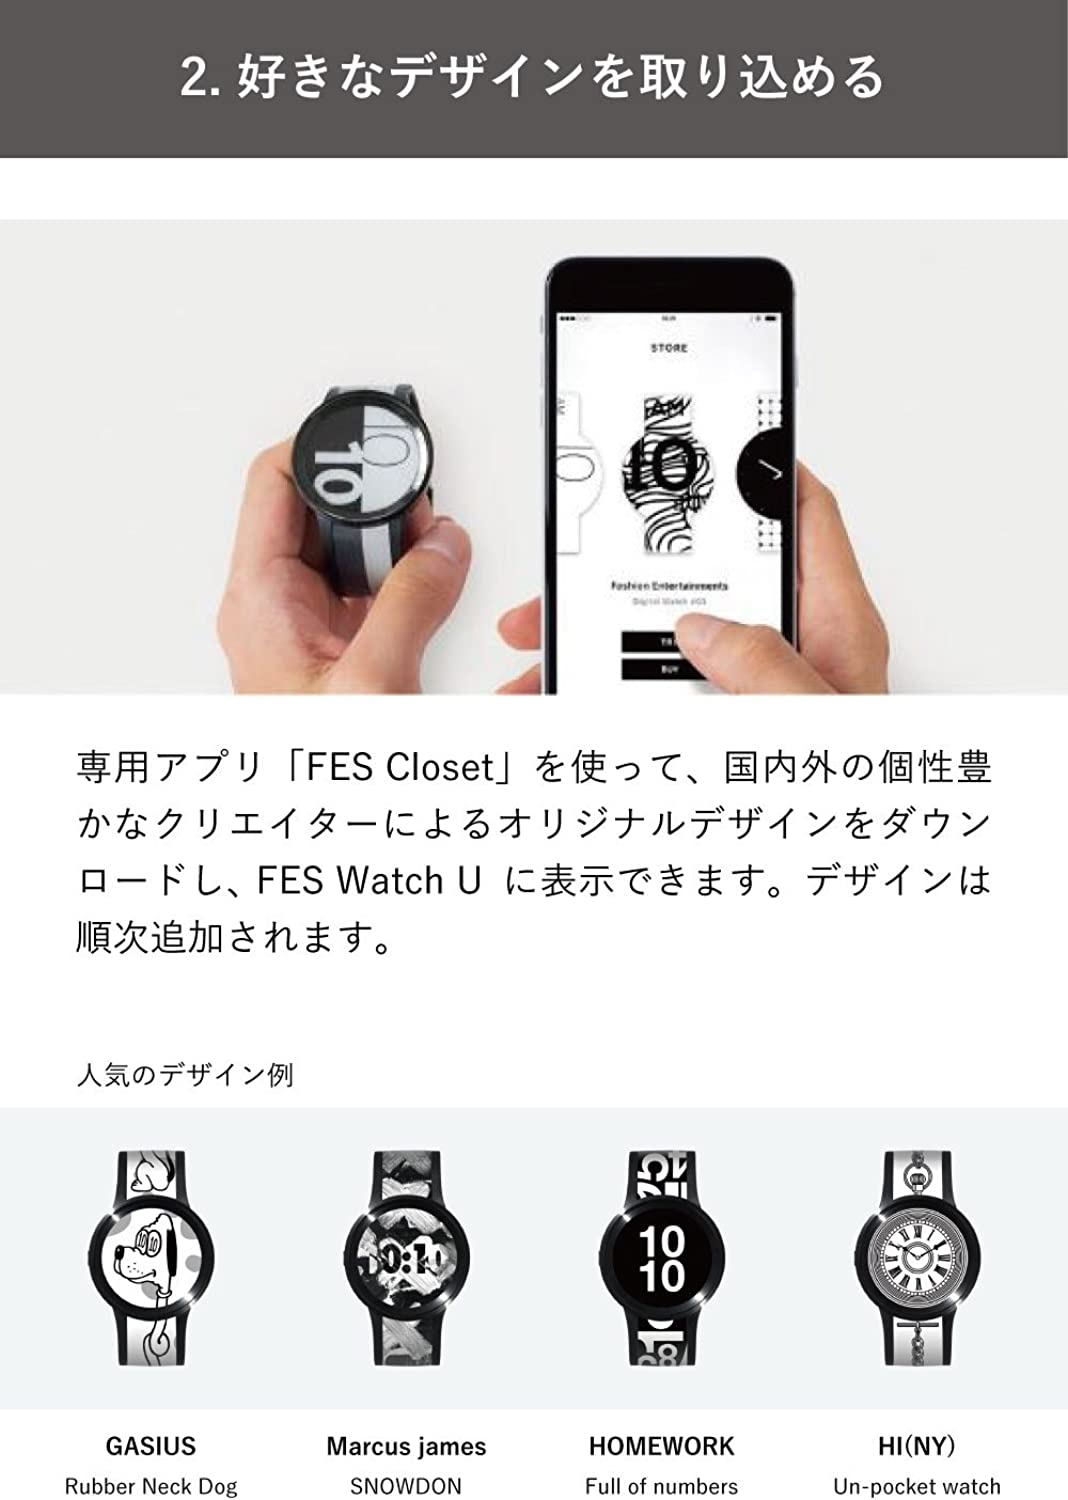 Sony 腕時計 FES Watch U Premium Black FES-WA1-B